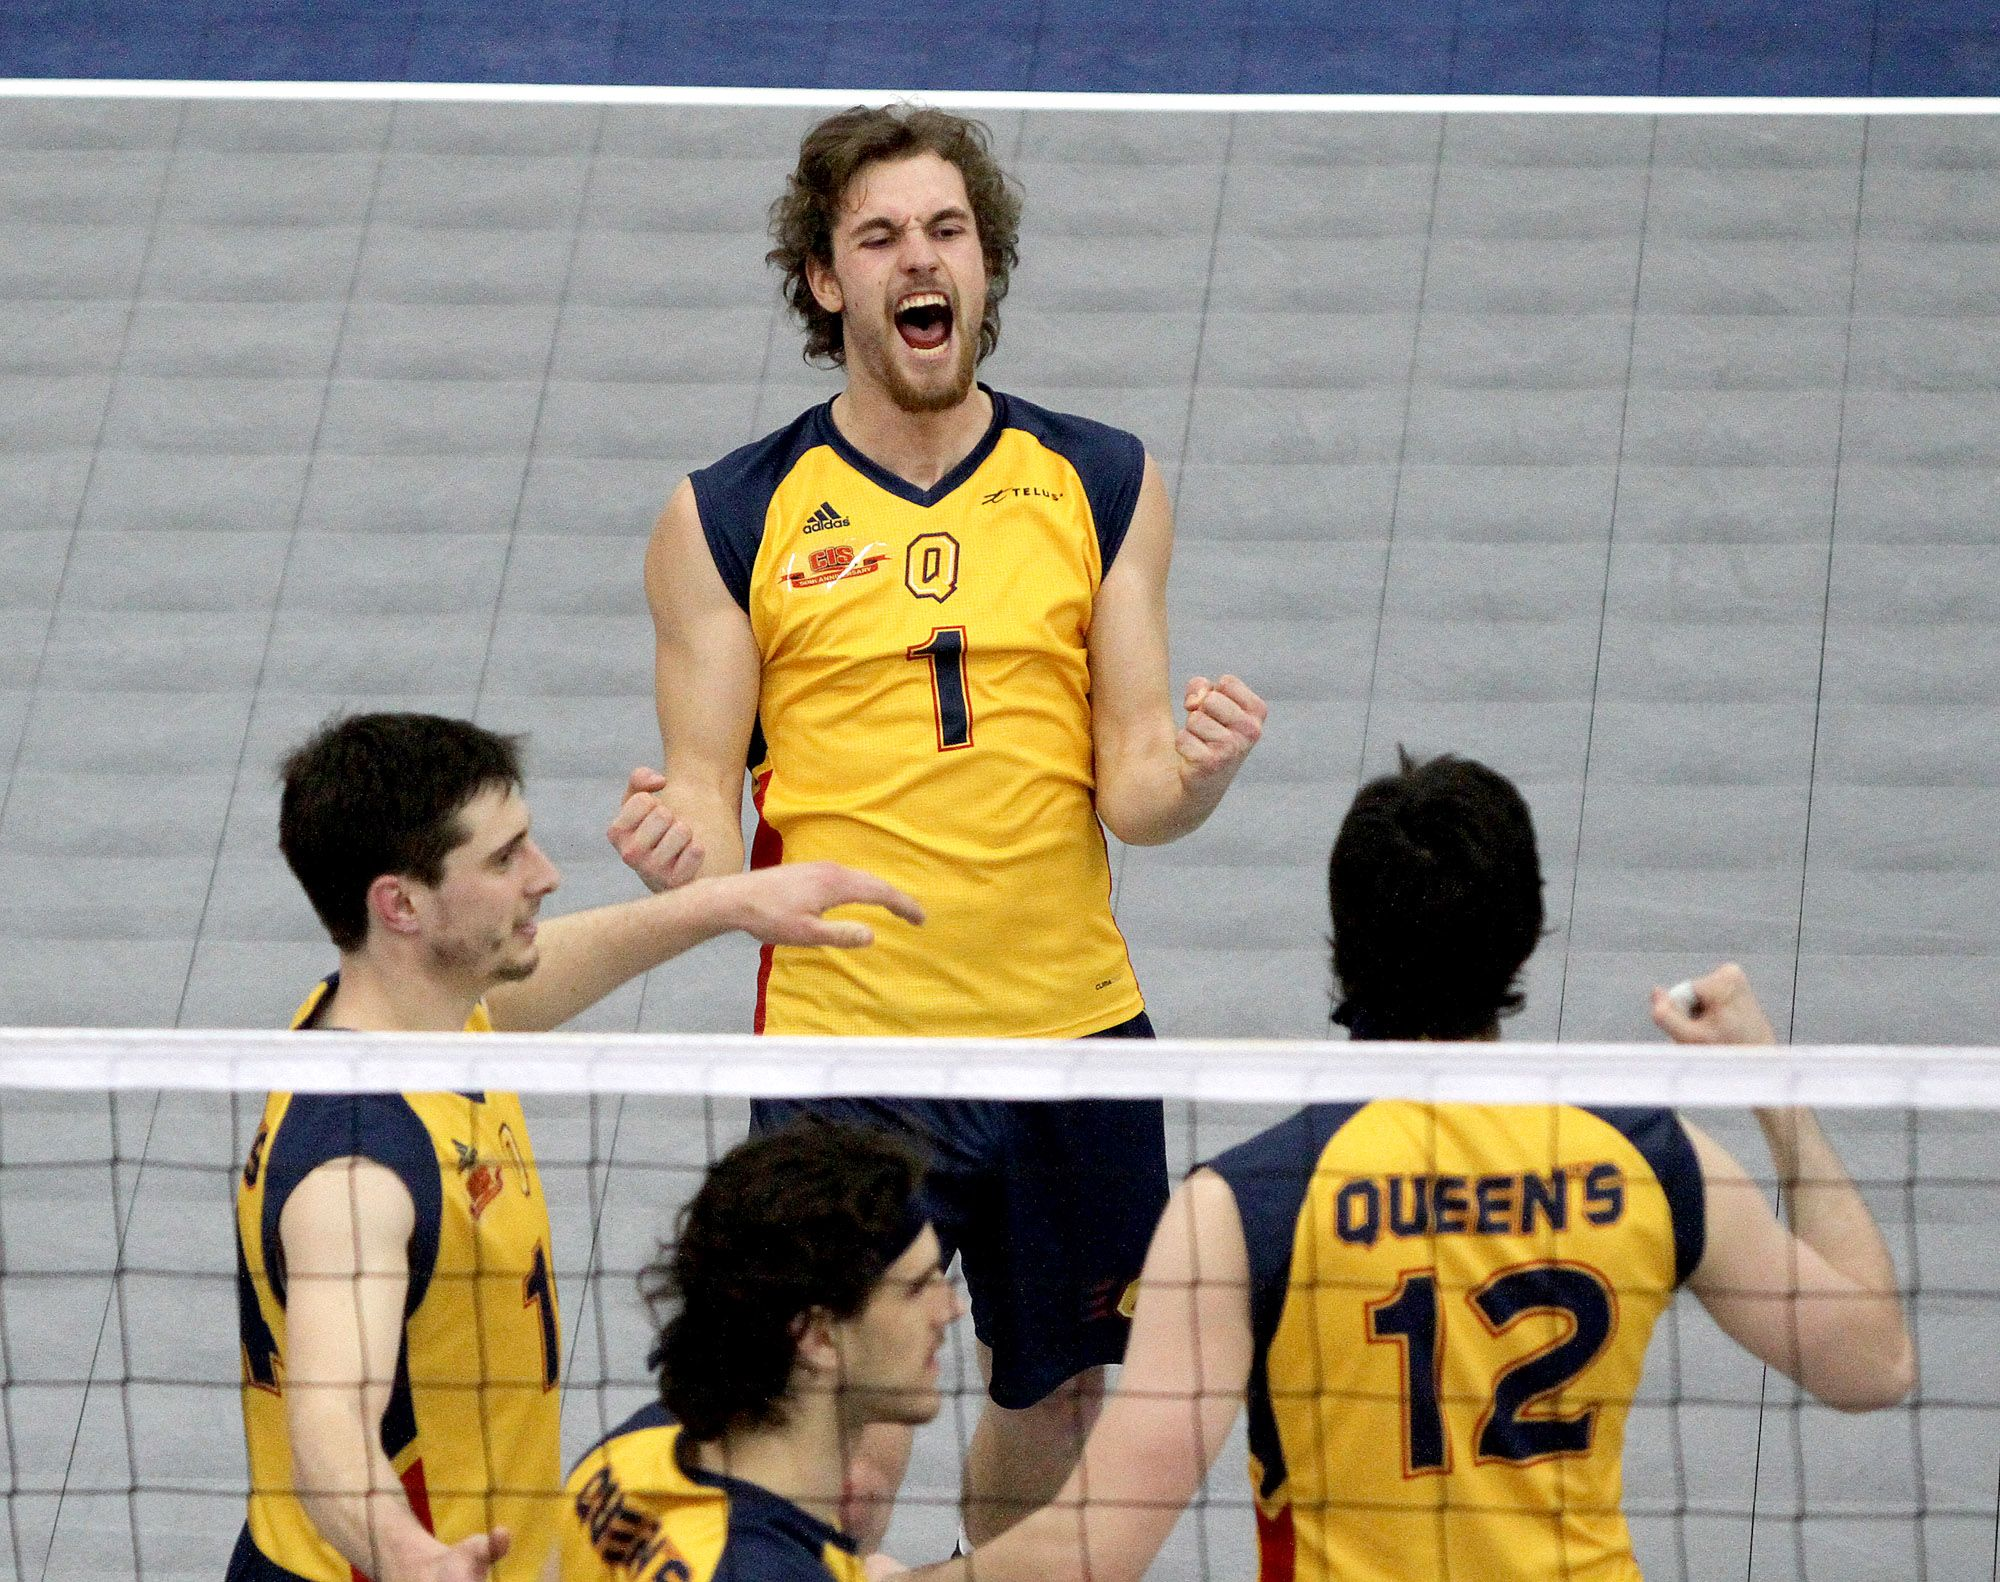 Will Sidgwick Celebrates A Point Against Alberta In The Cis Men S Volleyball Championship Ian Macalpine With Images Mens Volleyball Celebrities Volleyball